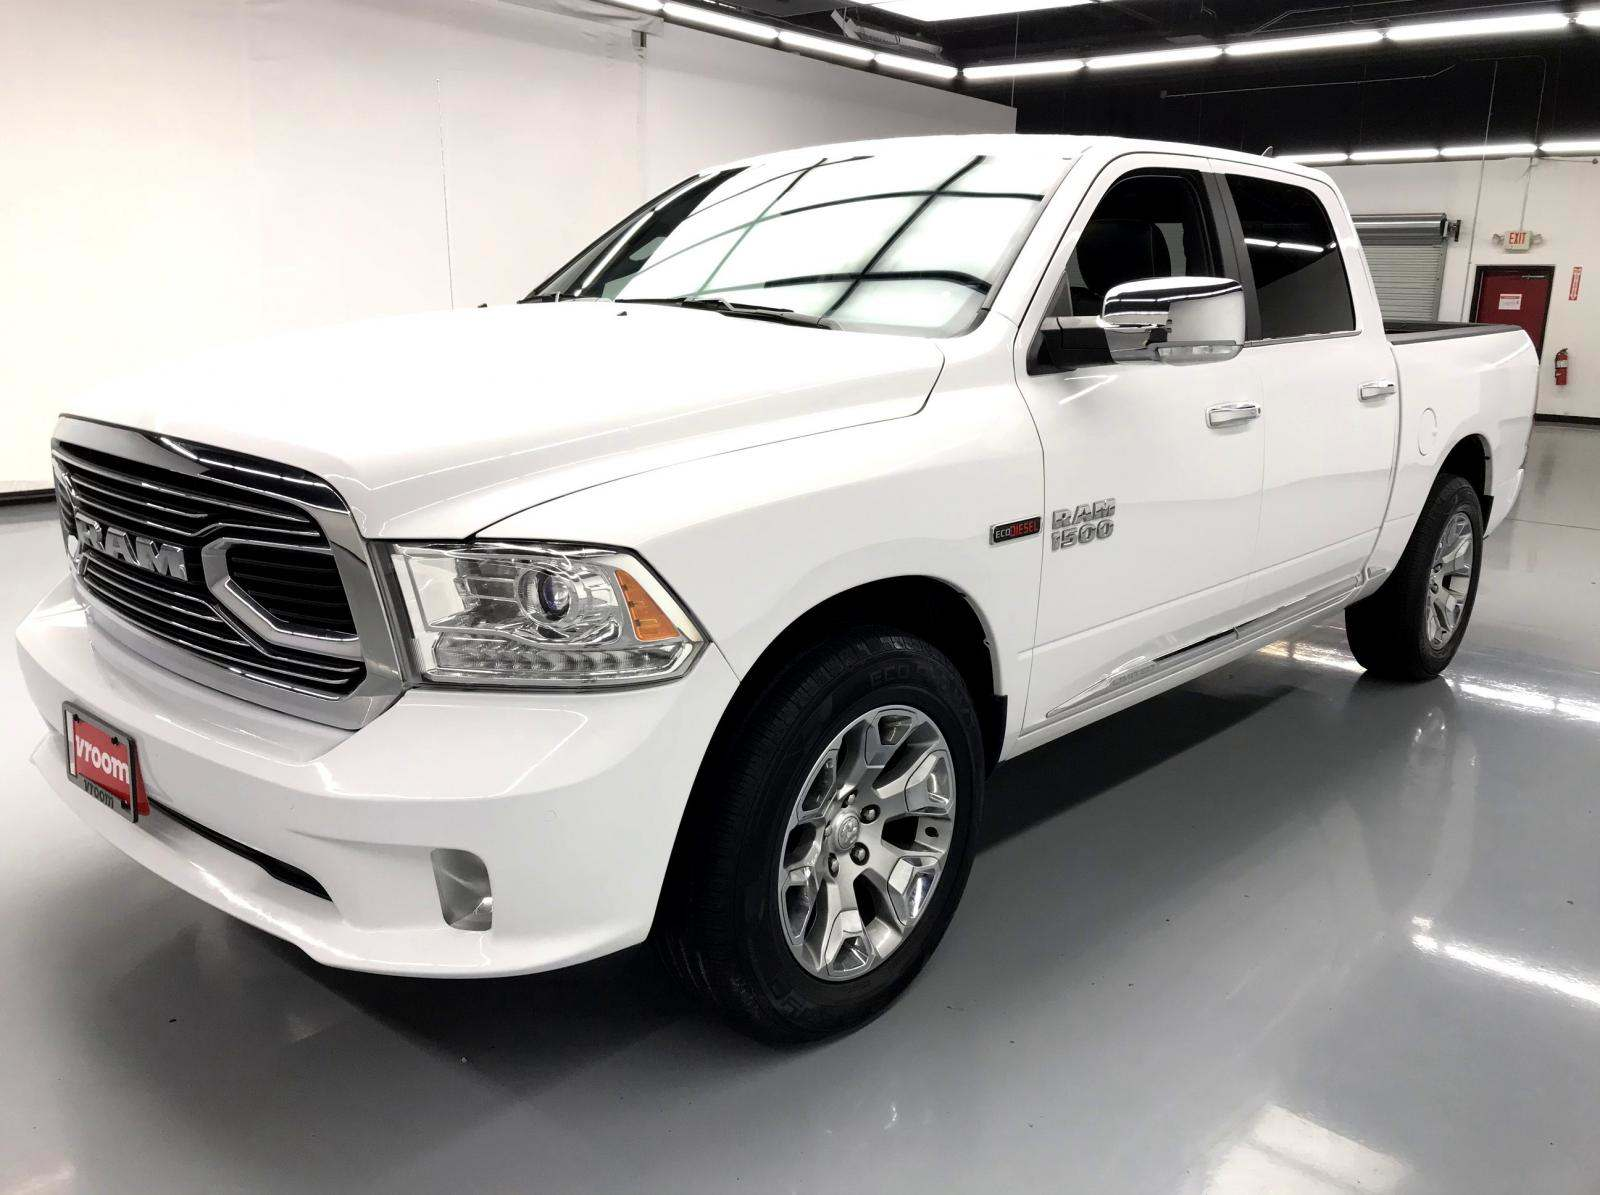 used Dodge Ram 1500 2016 vin: 1C6RR7PM5GS248412